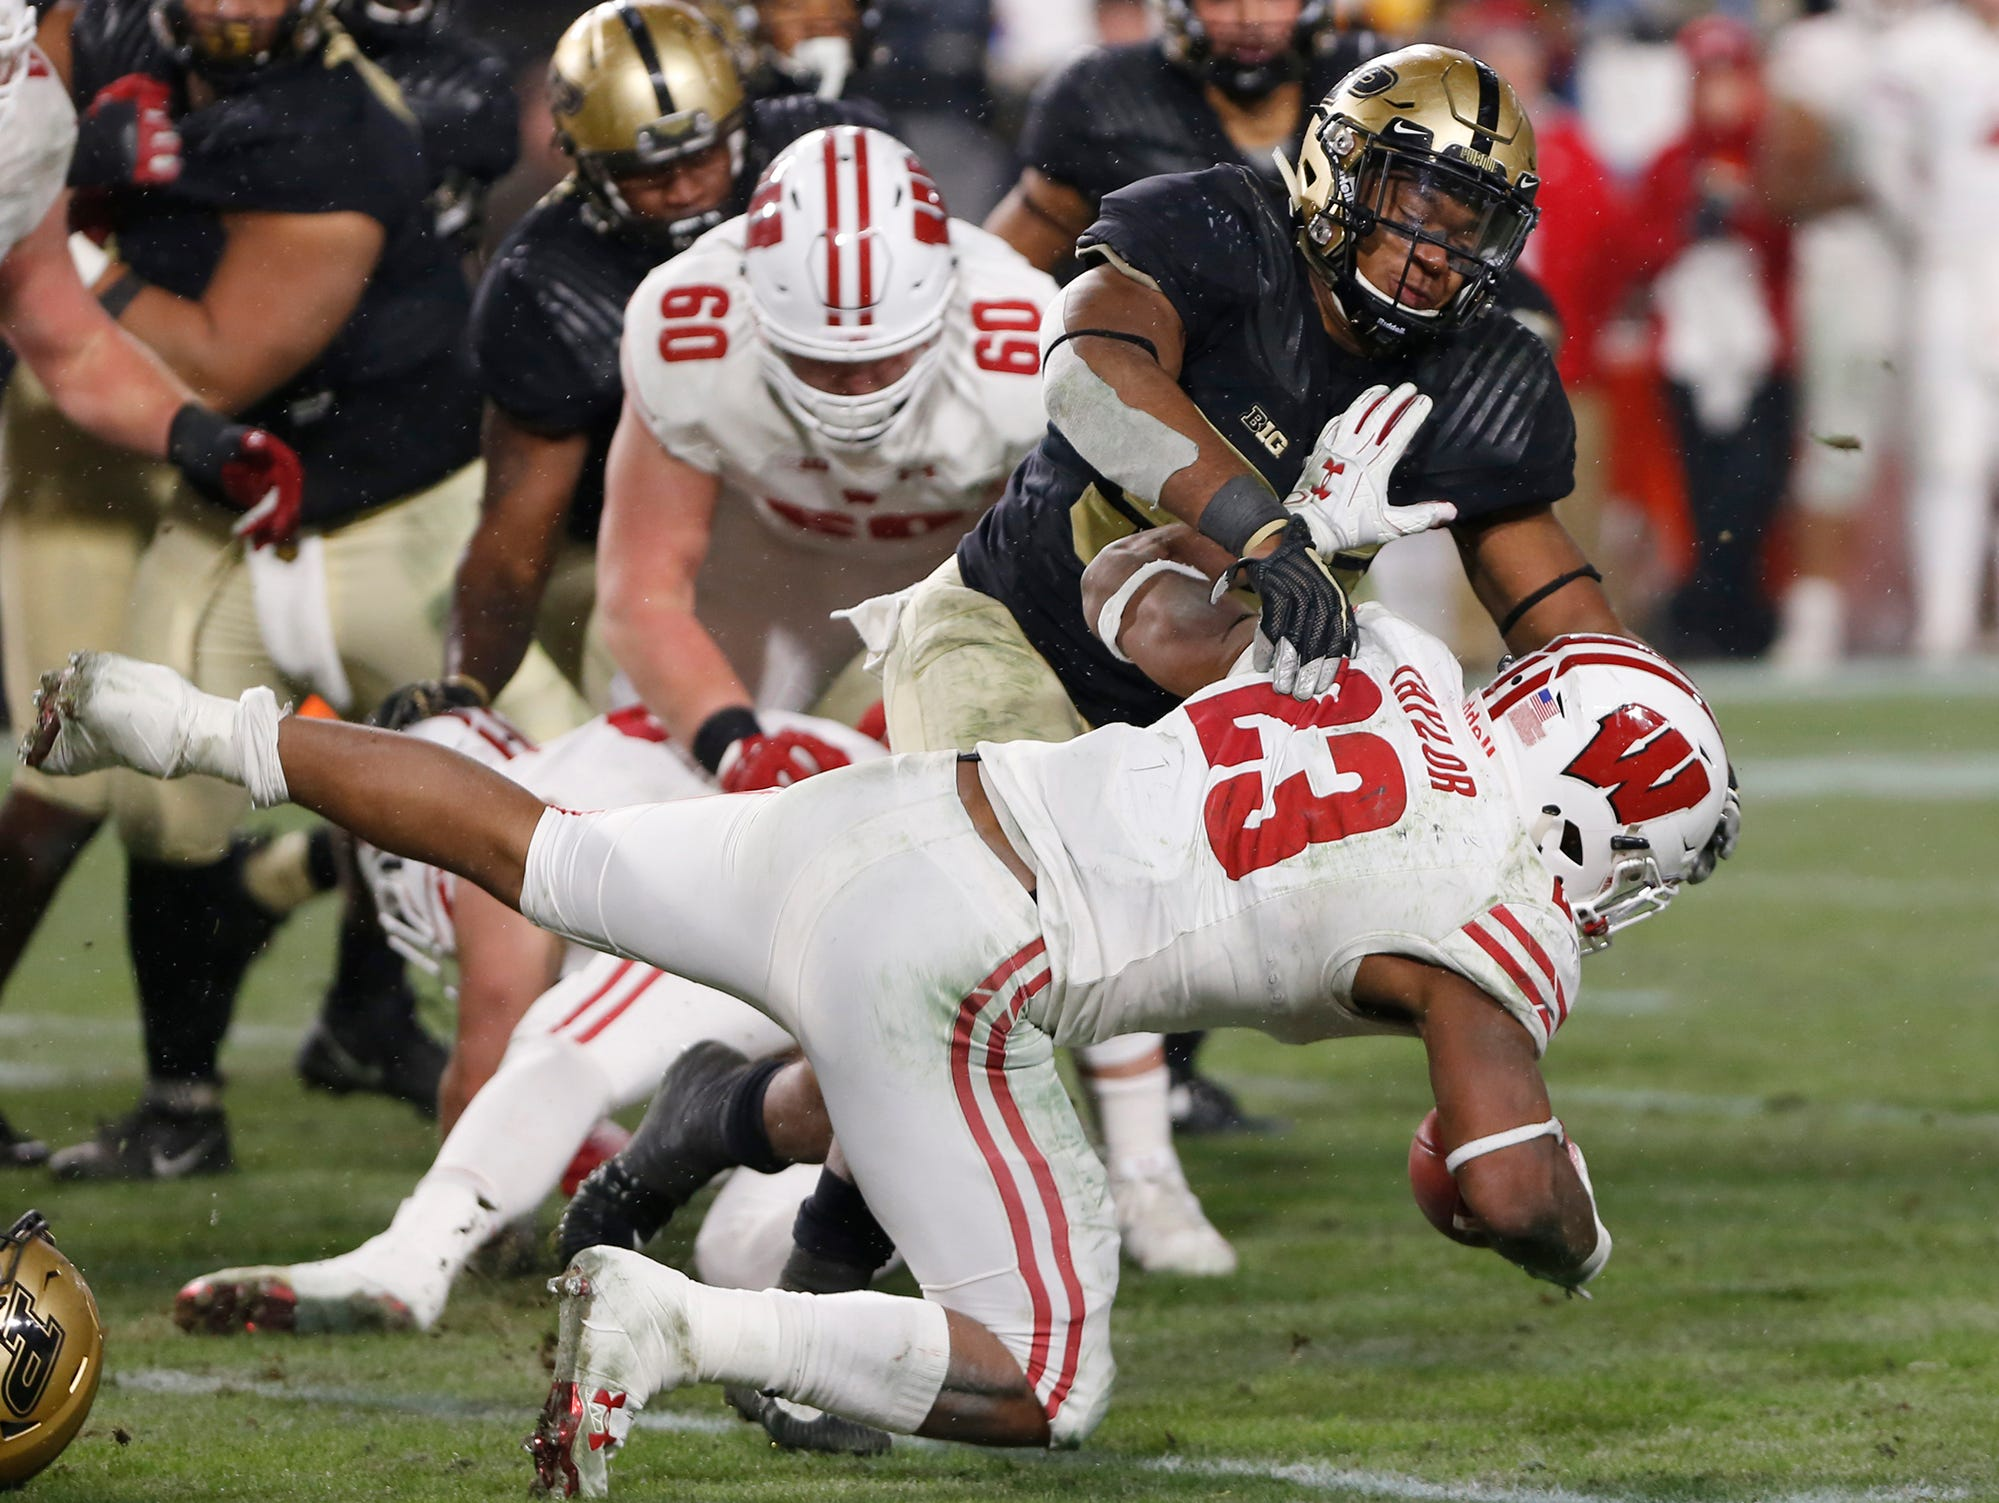 Derrick Barnes of Purdue brings down Jonathan Taylor of Wisconsin in the fourth quarter Saturday, November 17, 2018, at Ross-Ade Stadium. Purdue fell to Wisconsin 47-44 3OT.